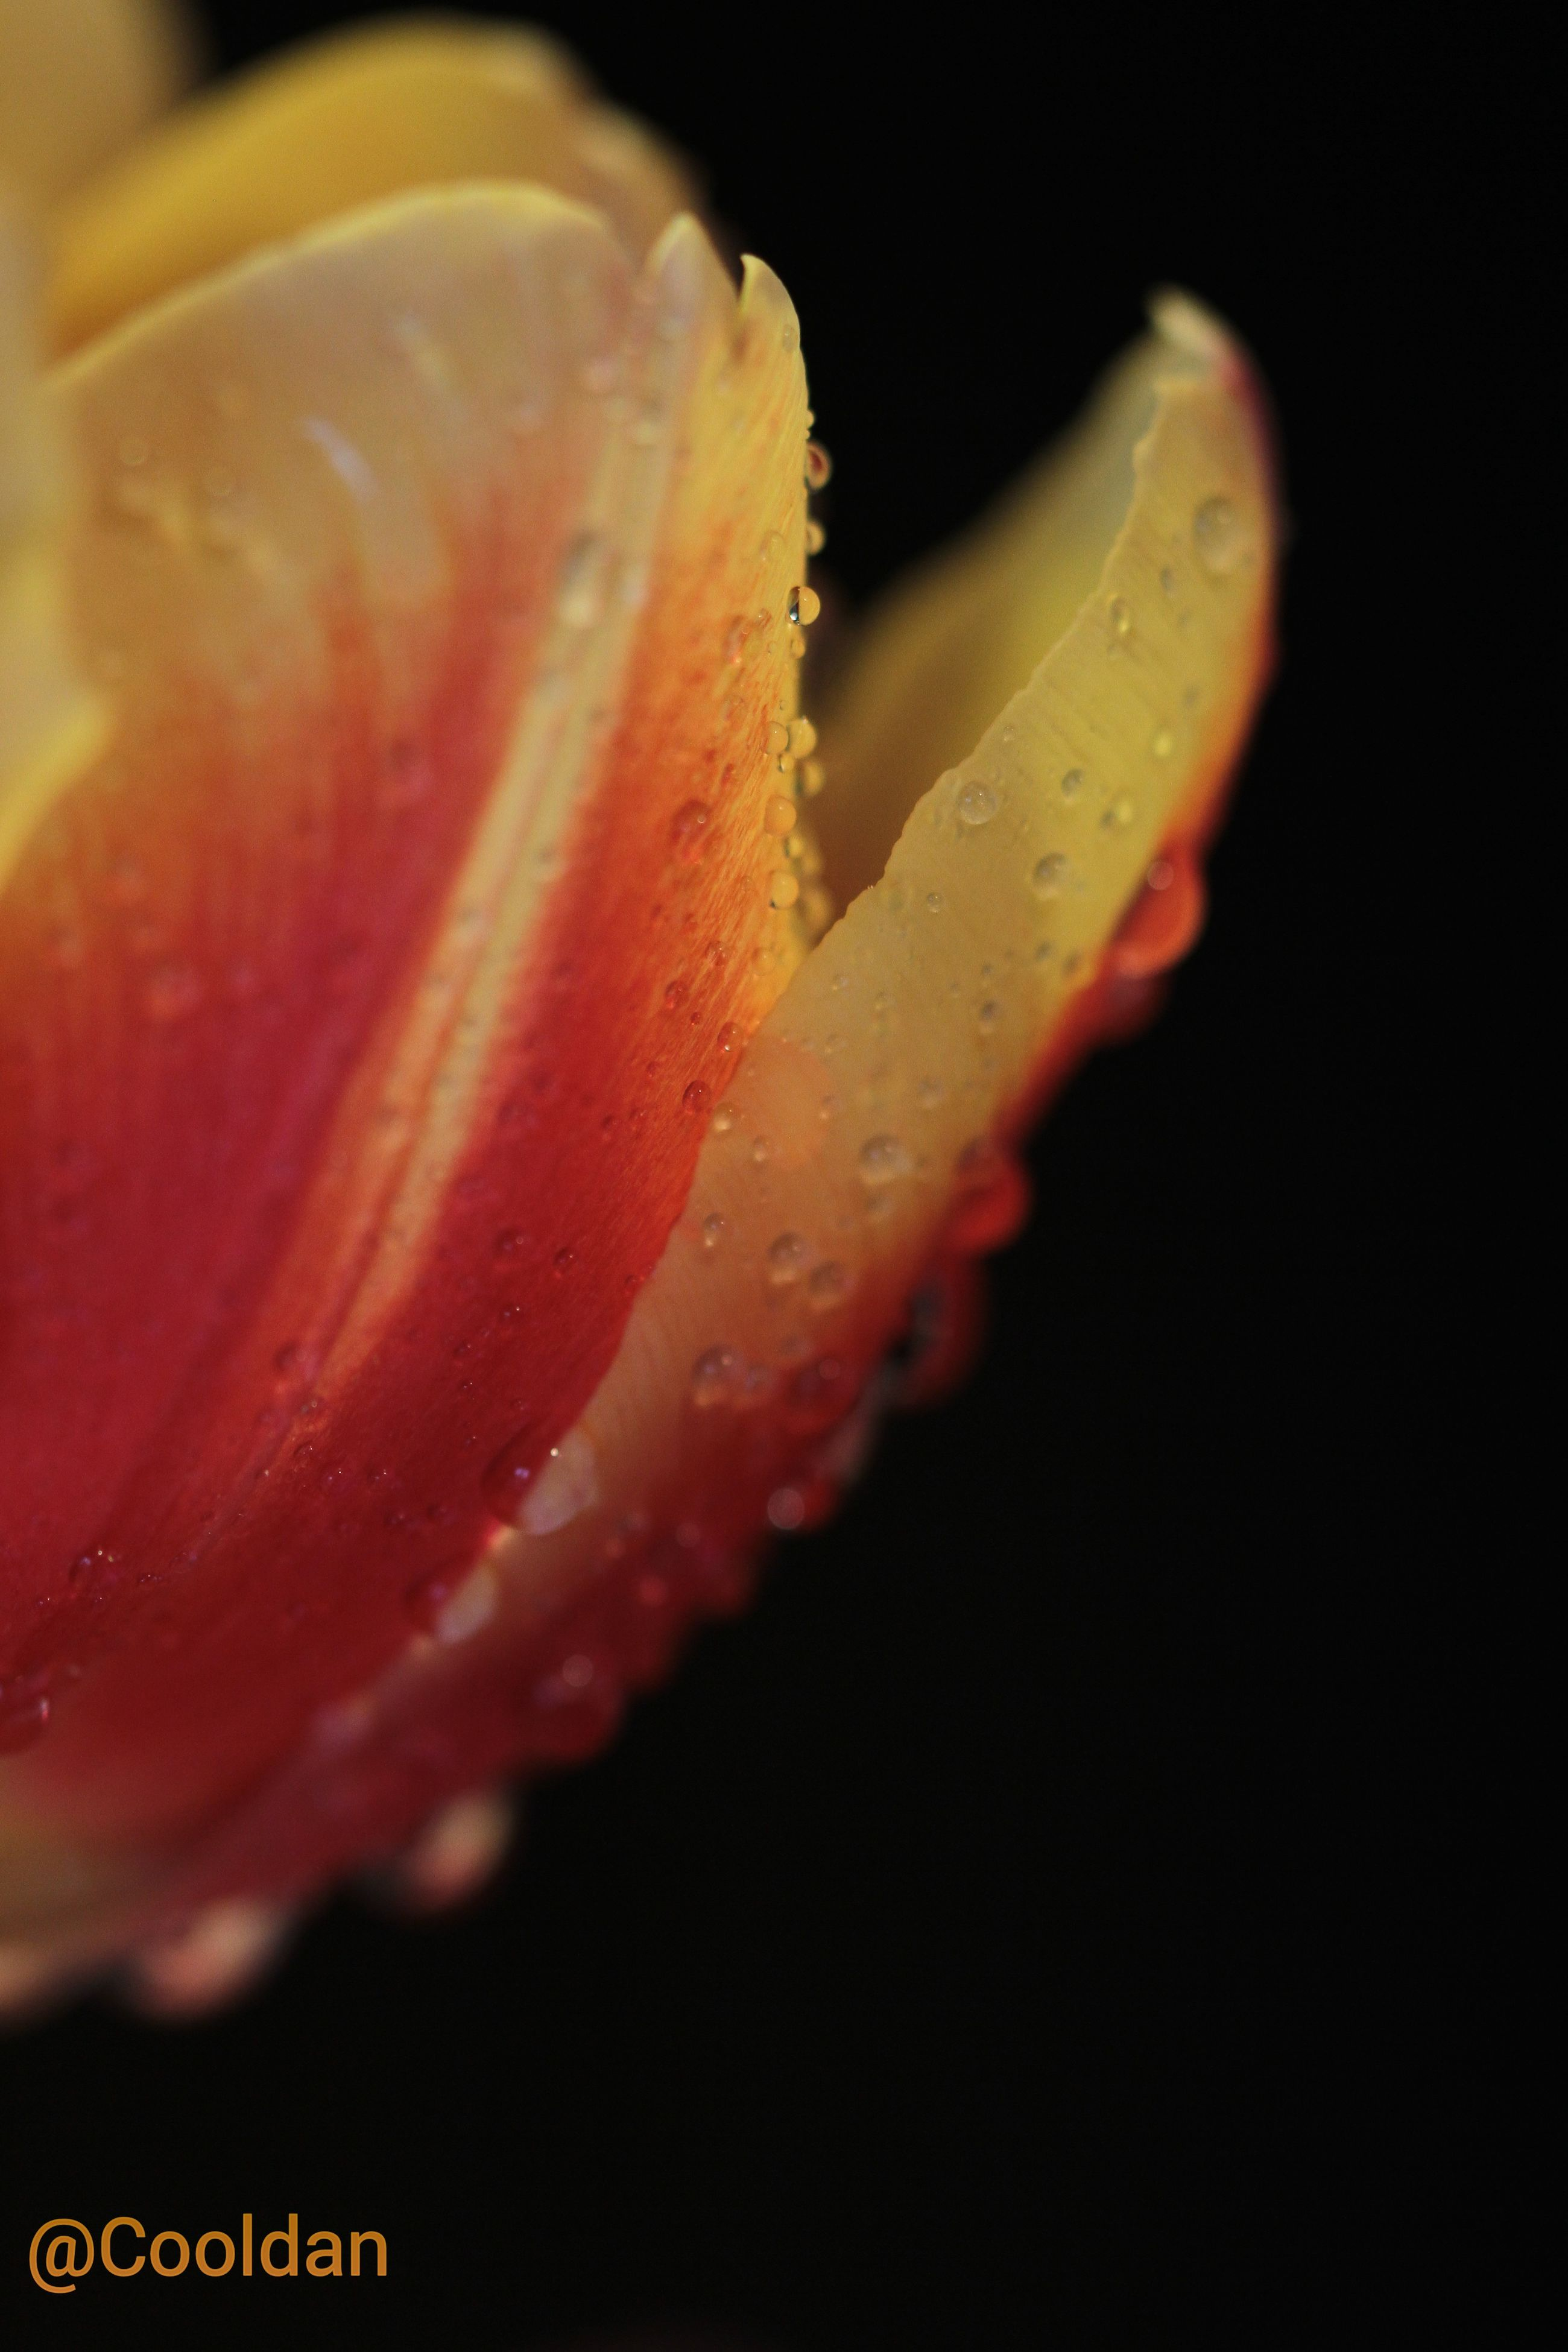 close-up, flower, freshness, black background, studio shot, petal, fragility, flower head, beauty in nature, night, single flower, nature, red, orange color, no people, selective focus, growth, drop, focus on foreground, water